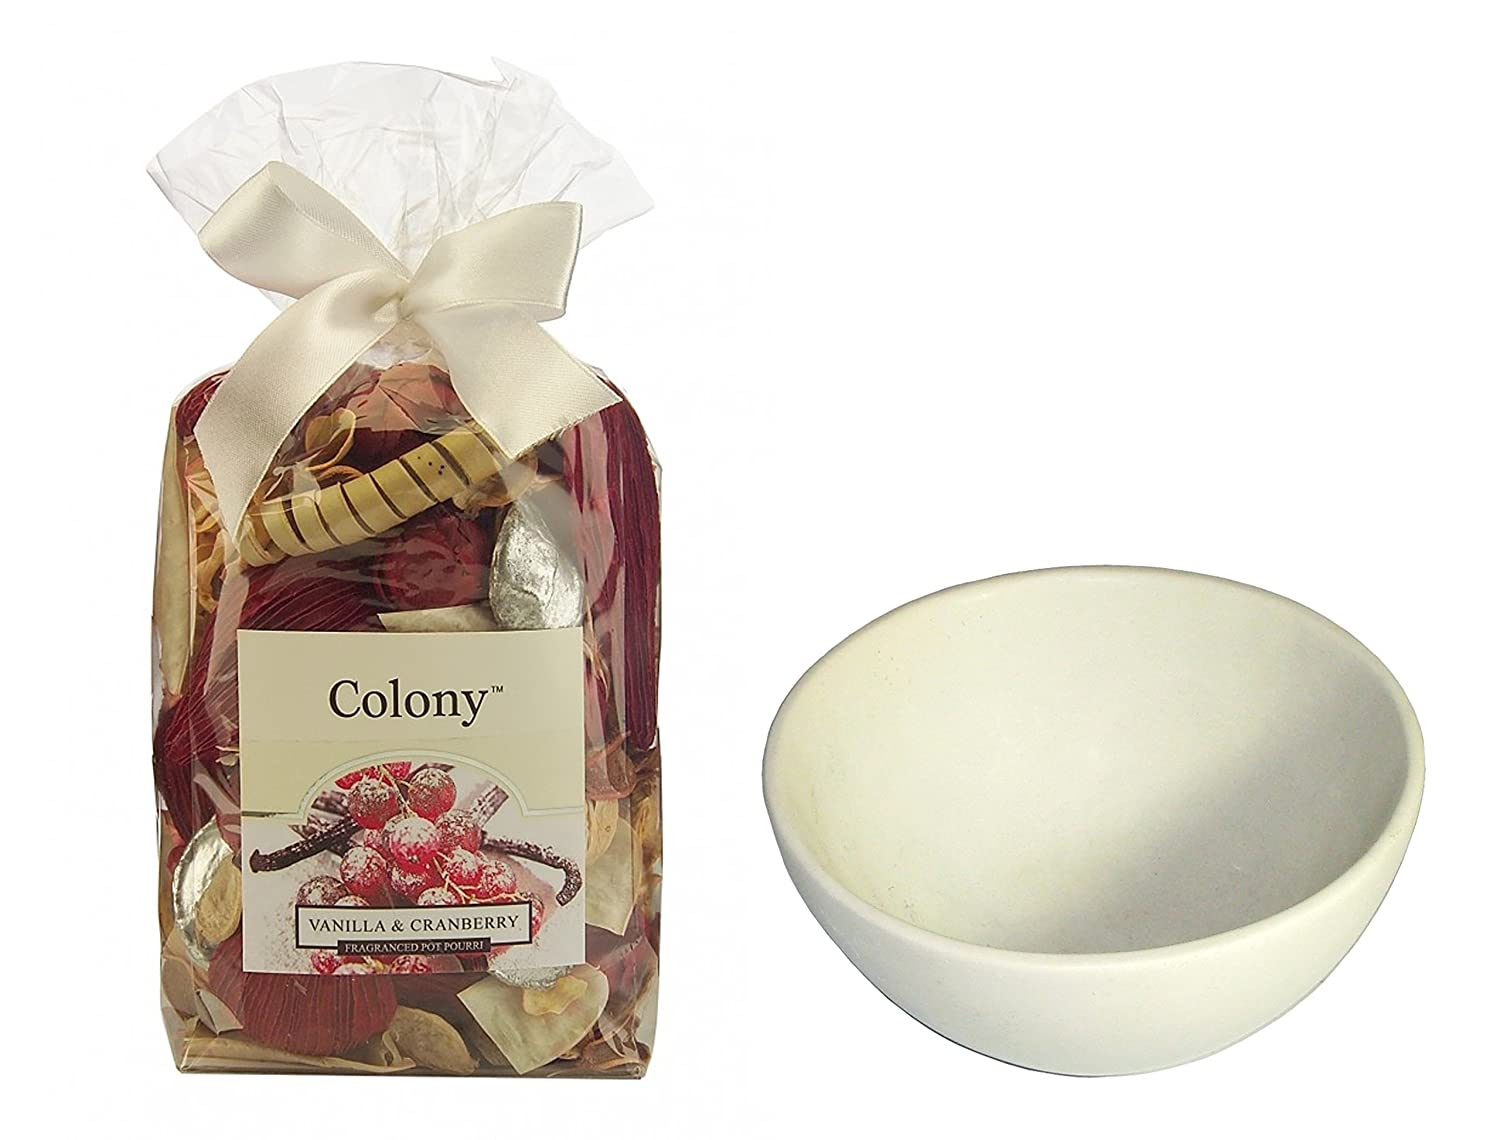 Colony Luxury Fragranced Pot Pourri - your choice of scent - Large Size (Add 6in / 15 cm Soapstone display bowl) Wax Lyrical